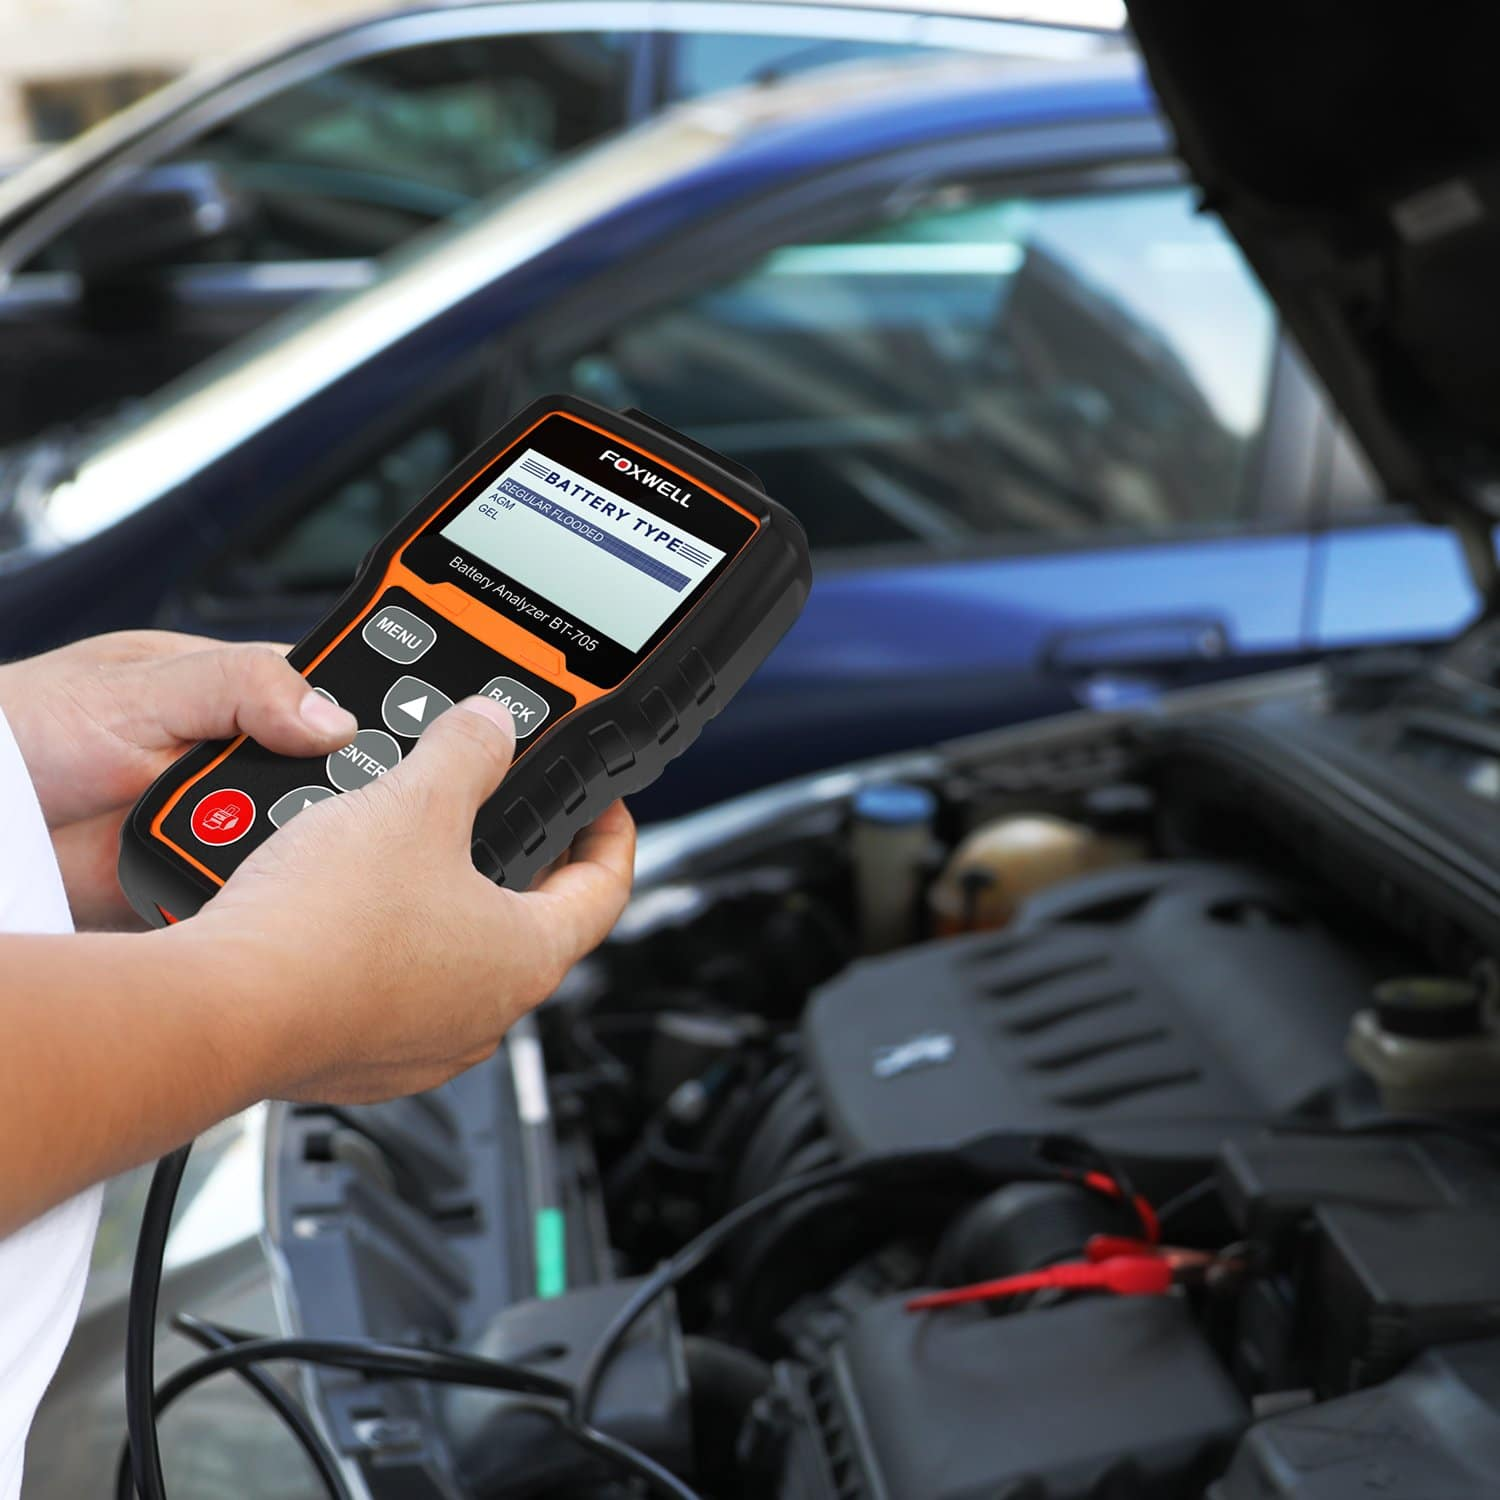 Top 10 Best Car Battery Testers in 2020 Reviews & Buyer's Guide